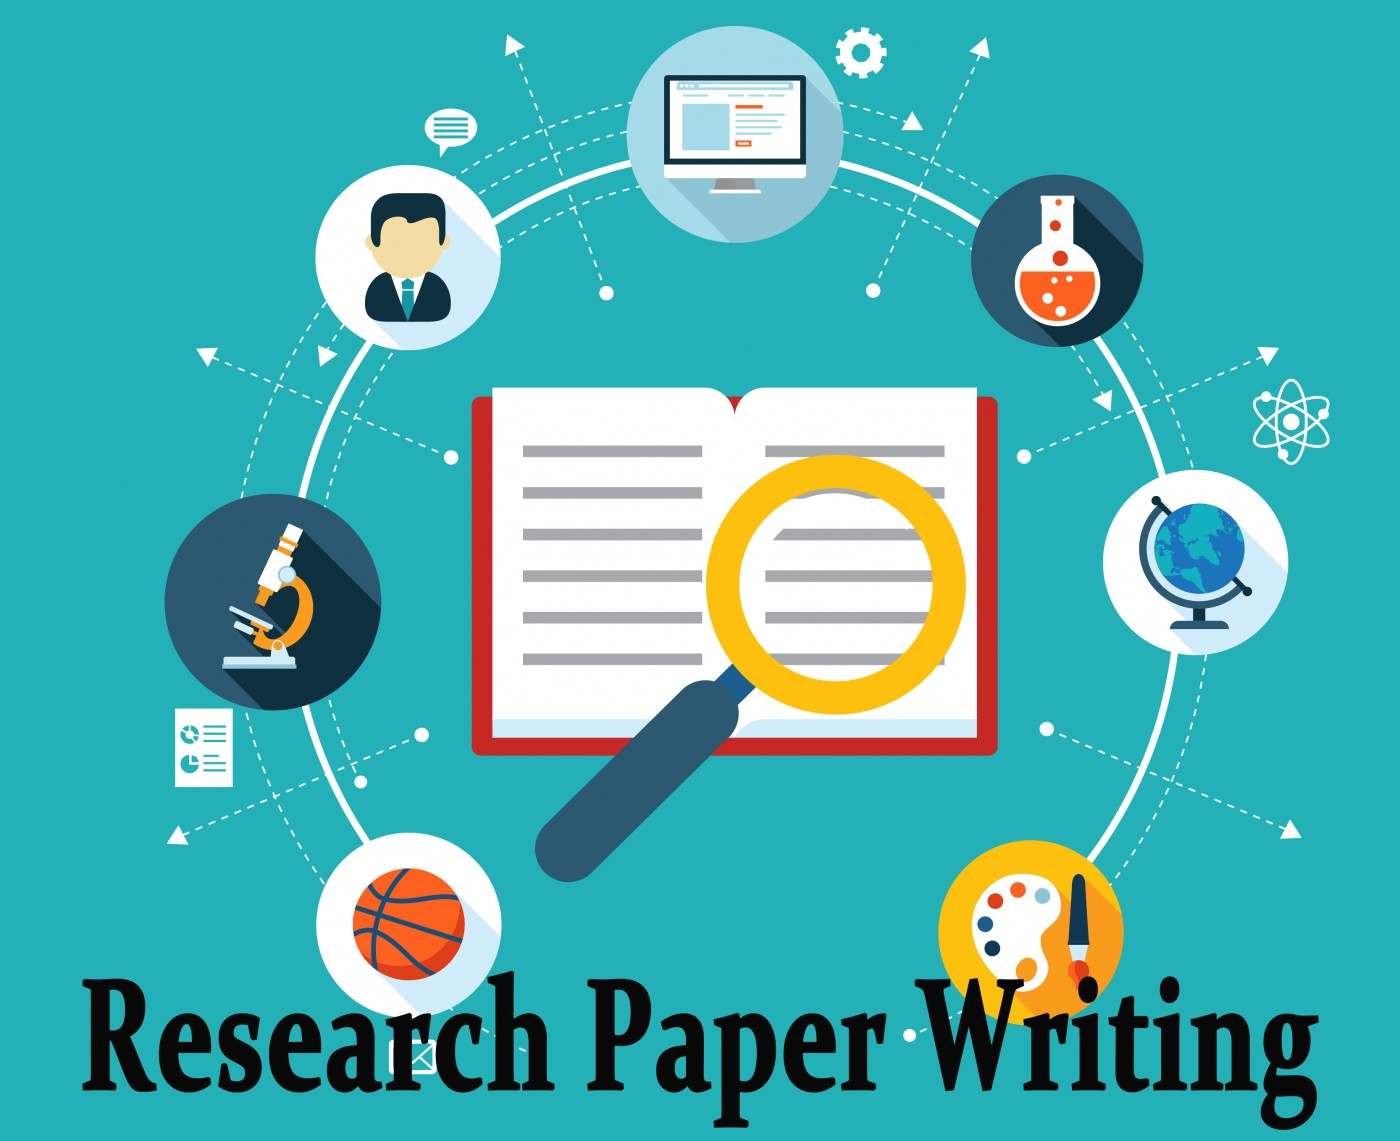 015 Research Paper 503 Effective Striking Writing Papers A Complete Guide 16th Edition Pdf James D Lester Outline 1400